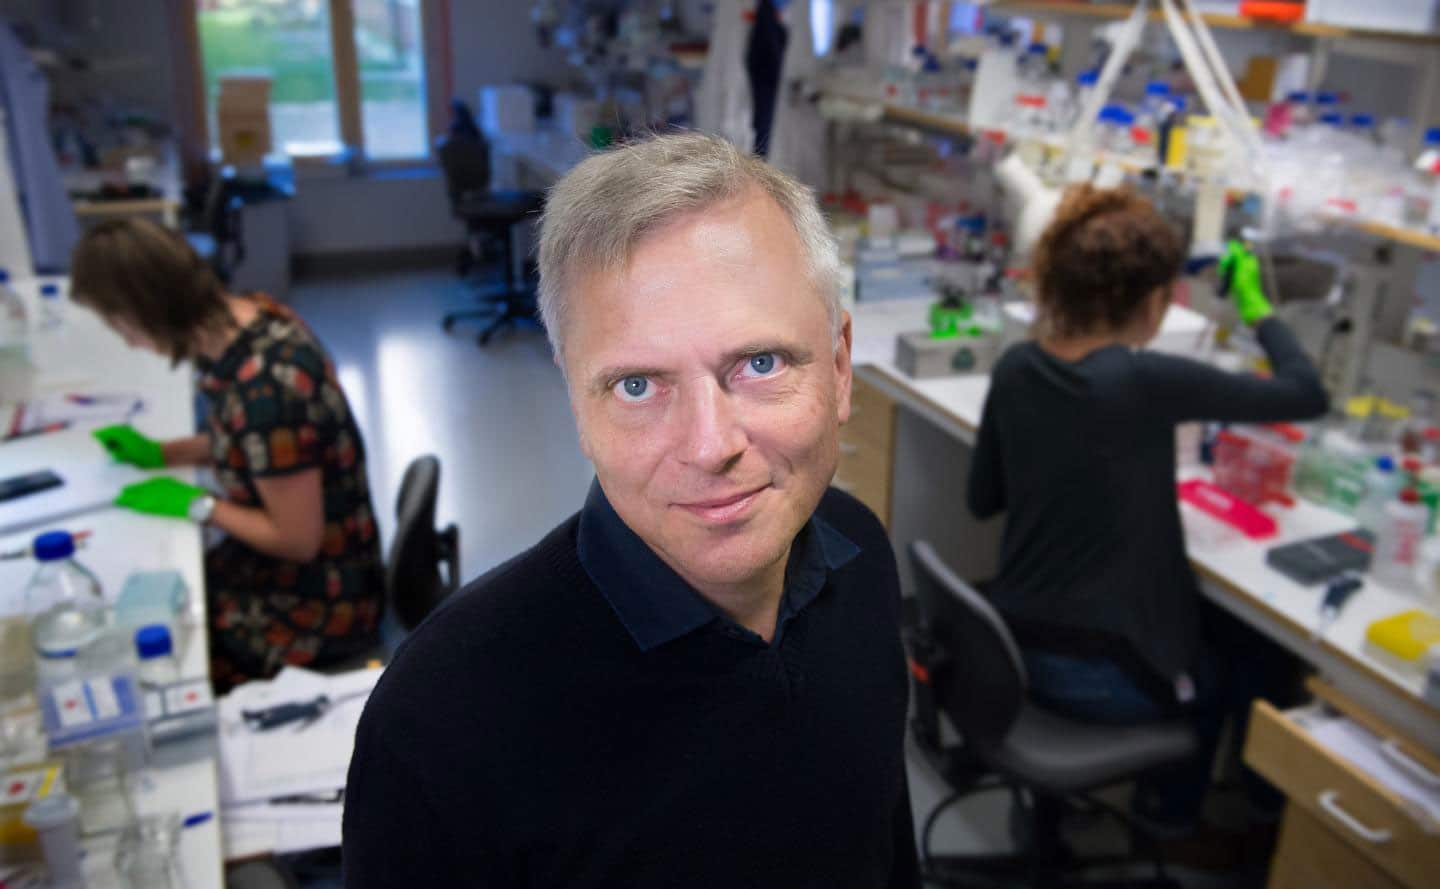 Patrick Ernfors, Ph.D., Professor at the Karolinska Institute of Sweden, Department of Medical Biochemistry and Biophysics. Ask Credit Gunner